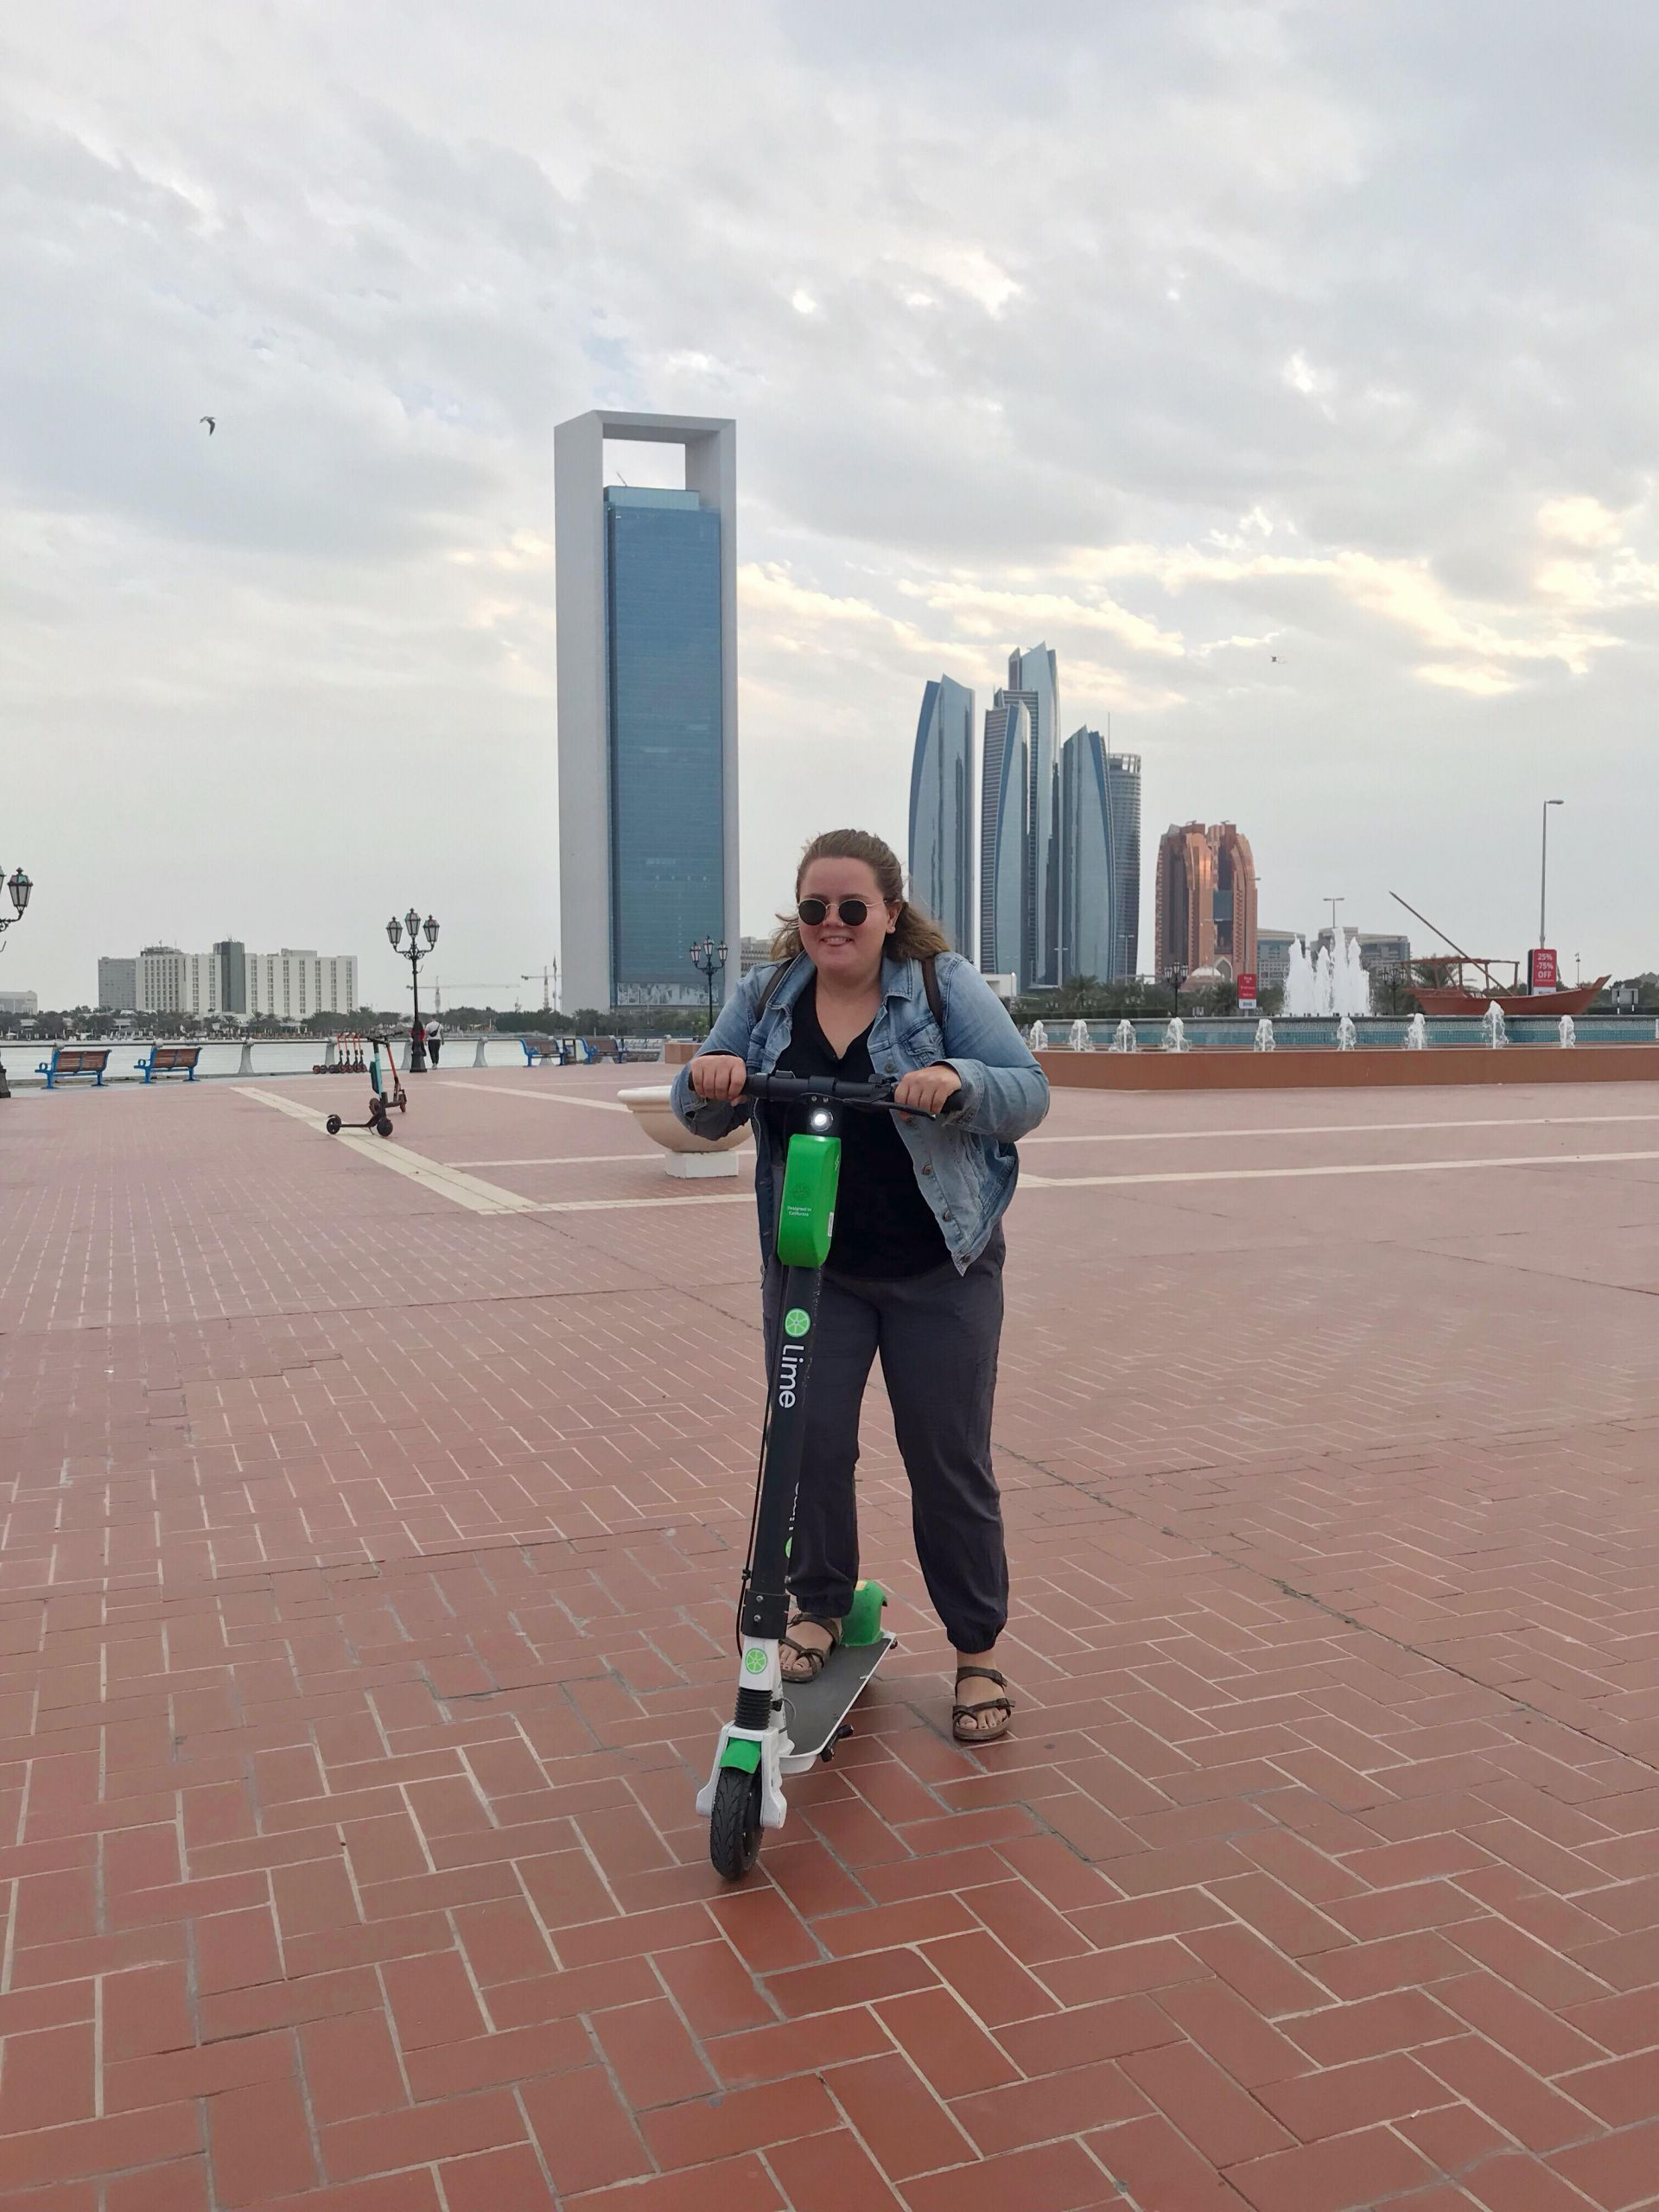 Riding scooters in Abu Dhabi with buildings behind